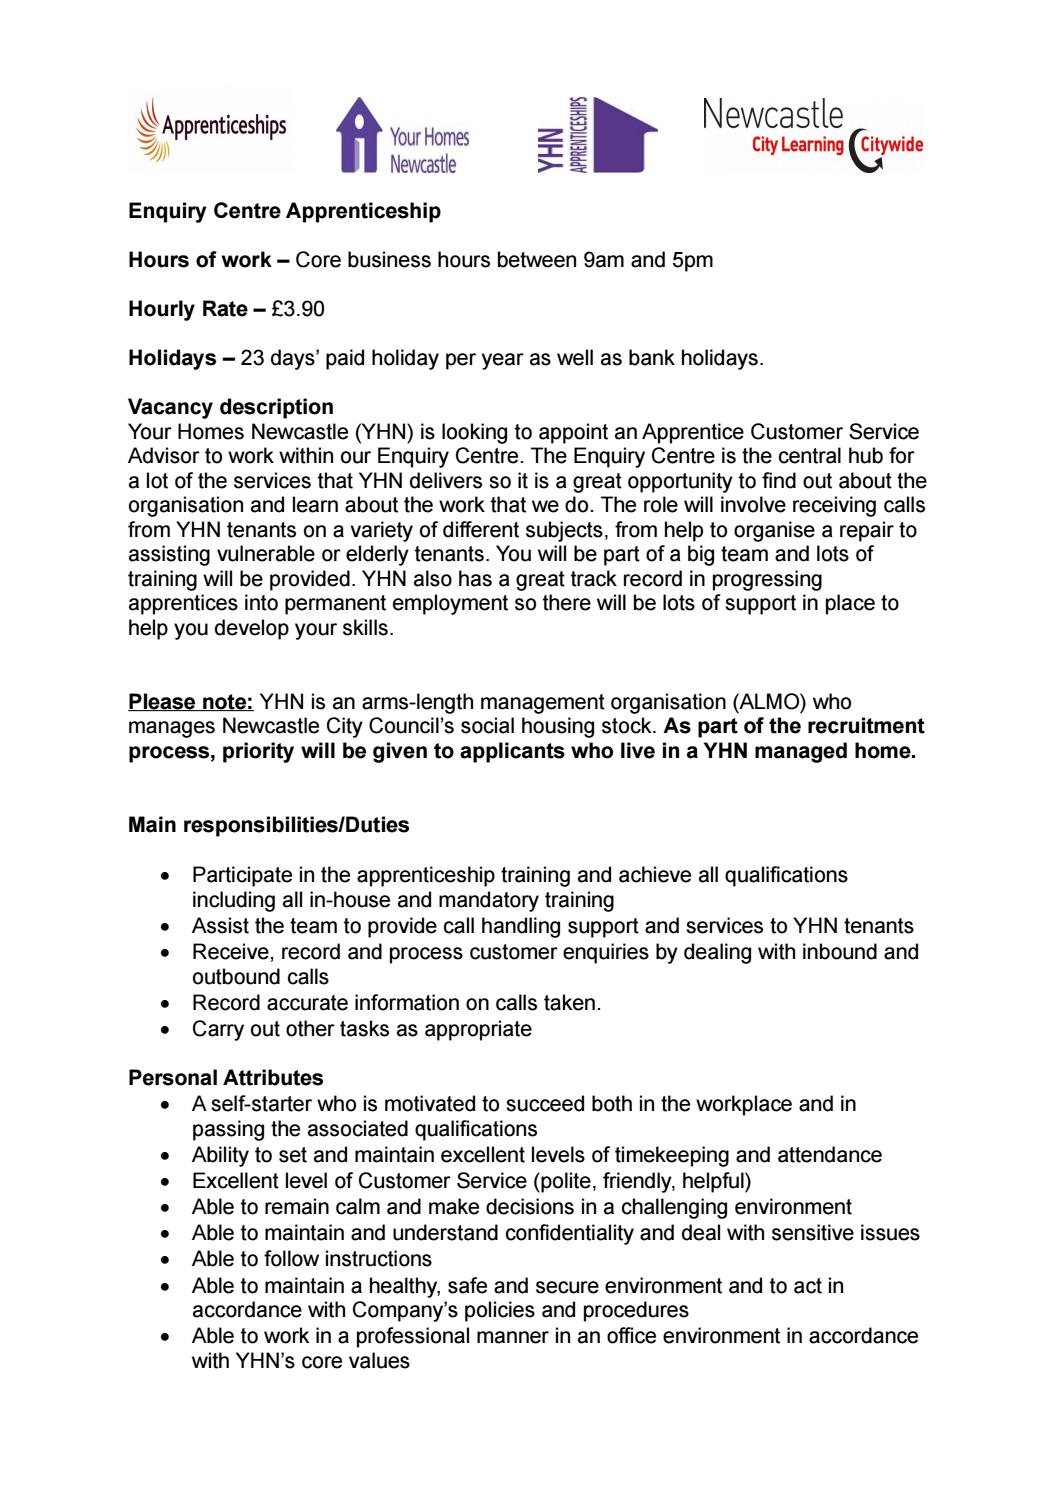 Apprenticeship Job Yhn Enquiry Centre Apprenticeship Job Description By Your Homes